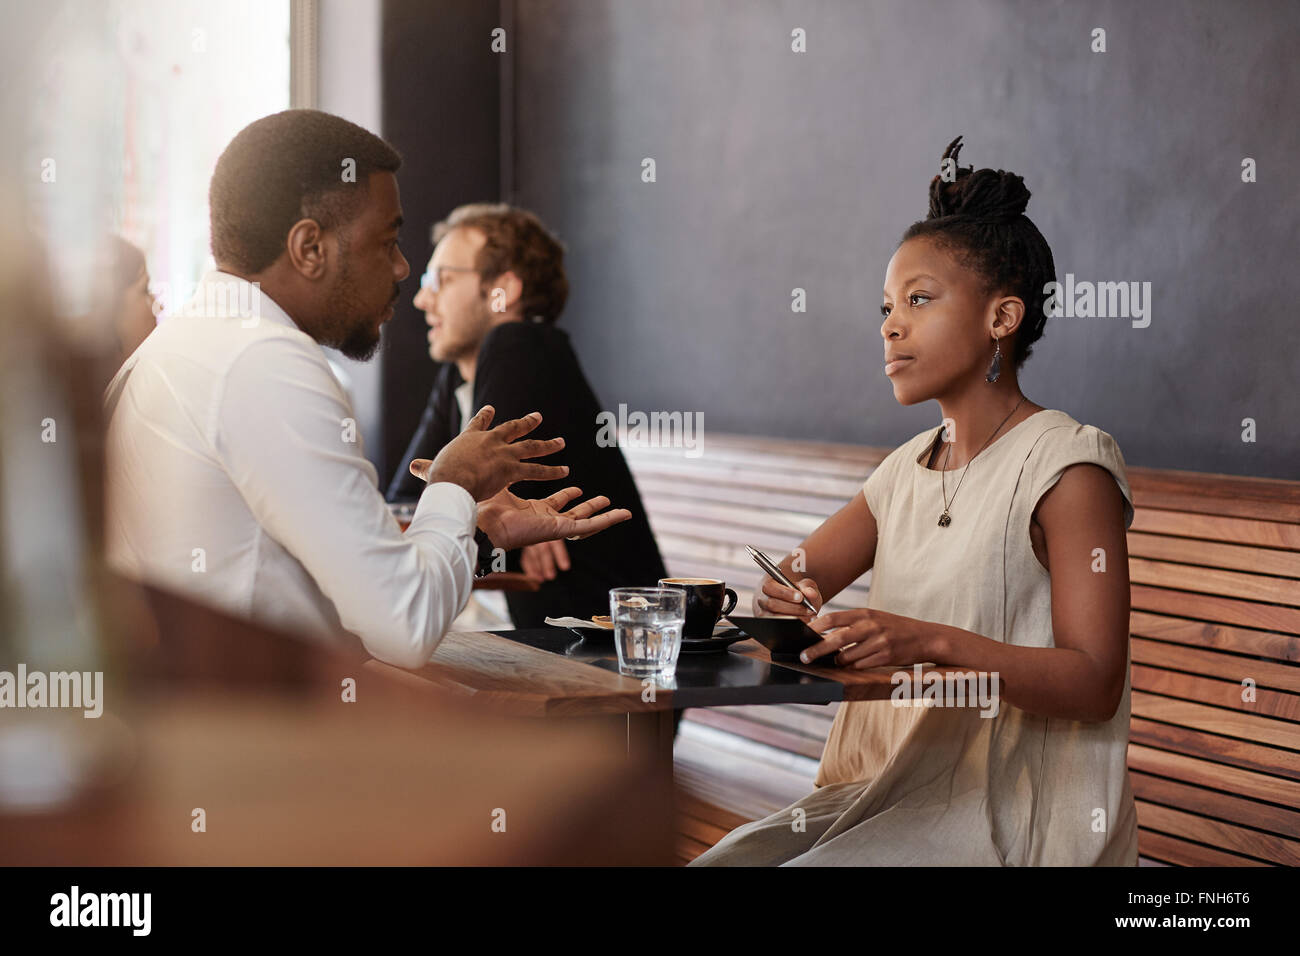 African woman having meeting with a man in busy cafe - Stock Image